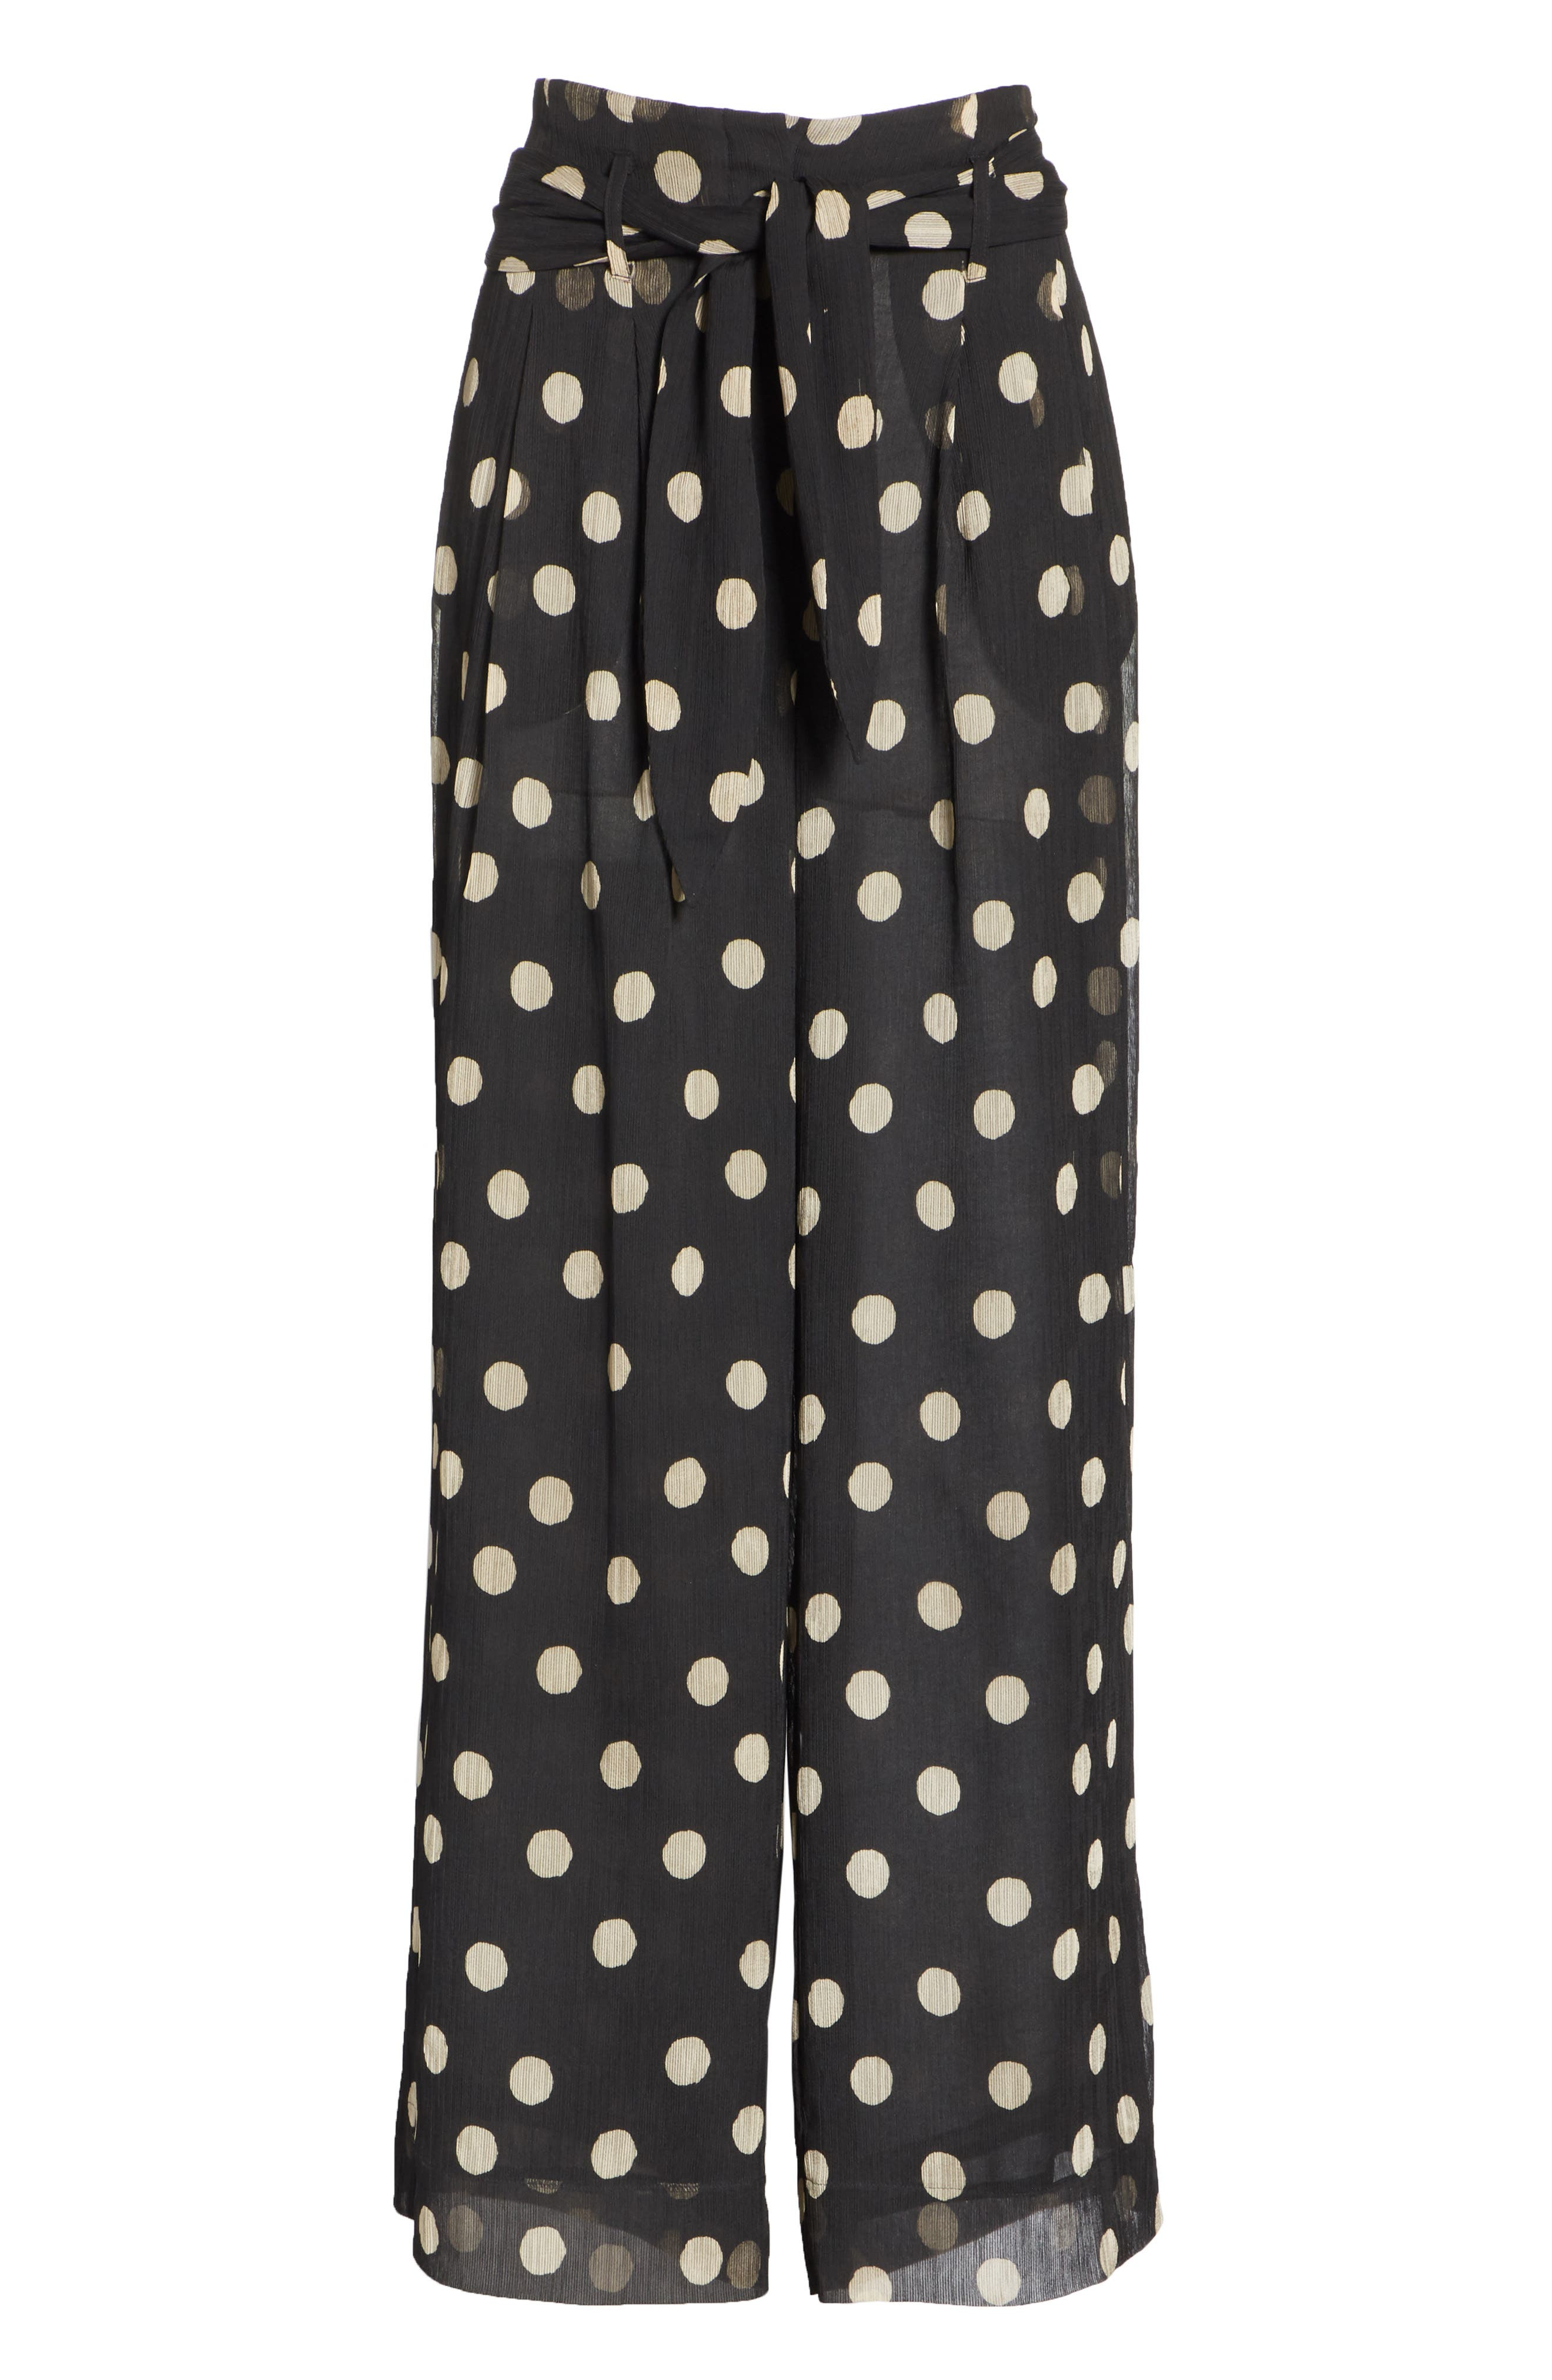 Nevada Polka Dot Chiffon Pants,                             Alternate thumbnail 6, color,                             POLKA DOT